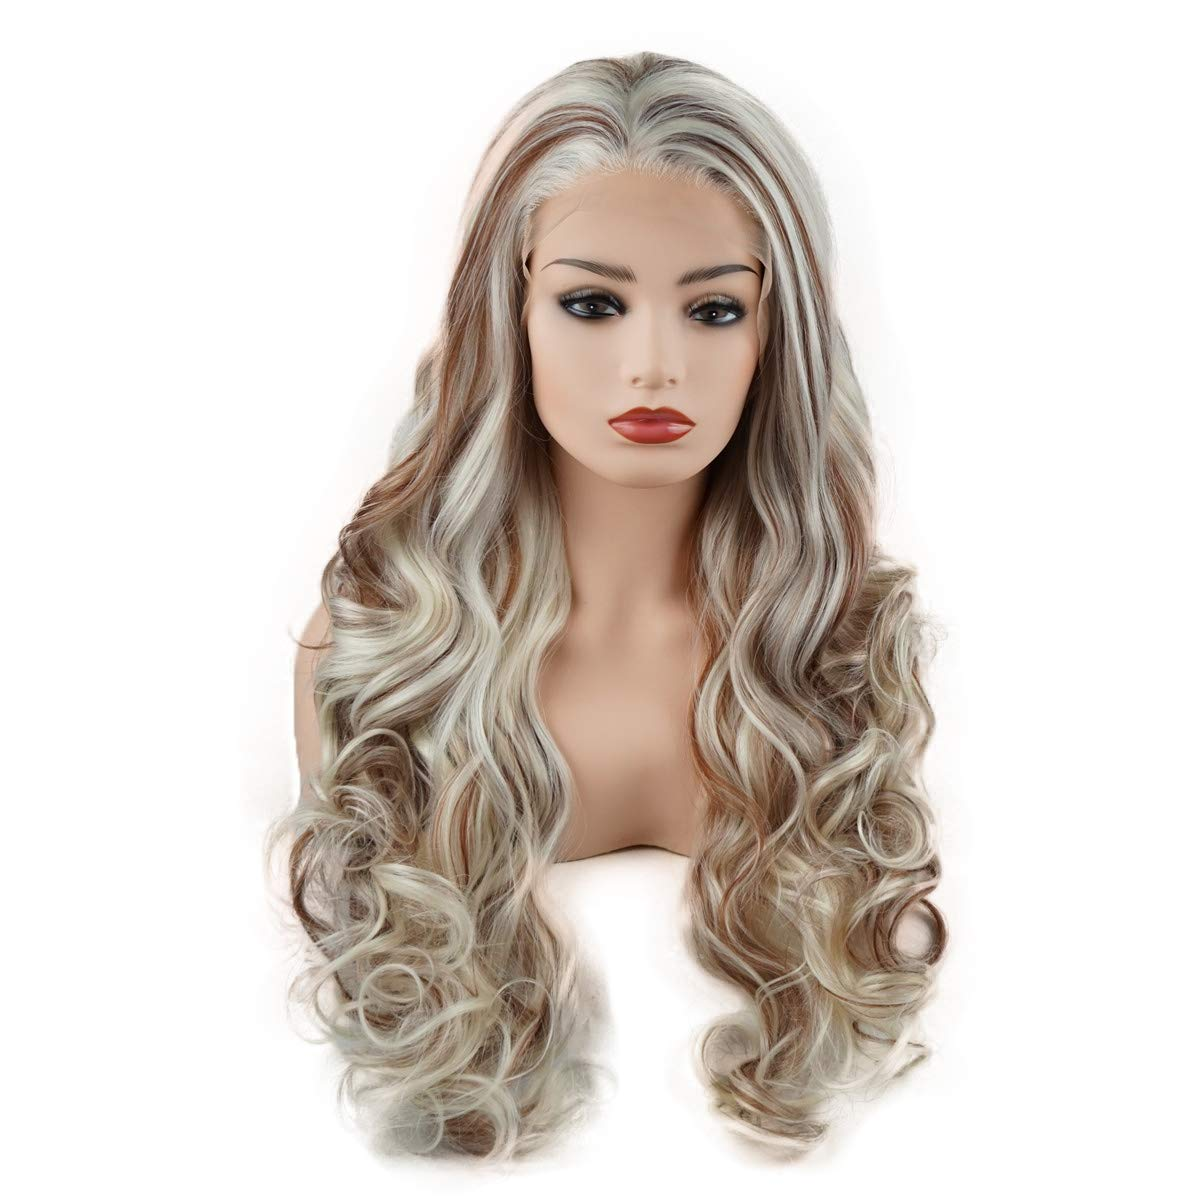 Meiyite Hair Wavy Long 26inch White and Blonde and Auburn Mix Half Hand Tied Realistic Synthetic Lace Front Wigs